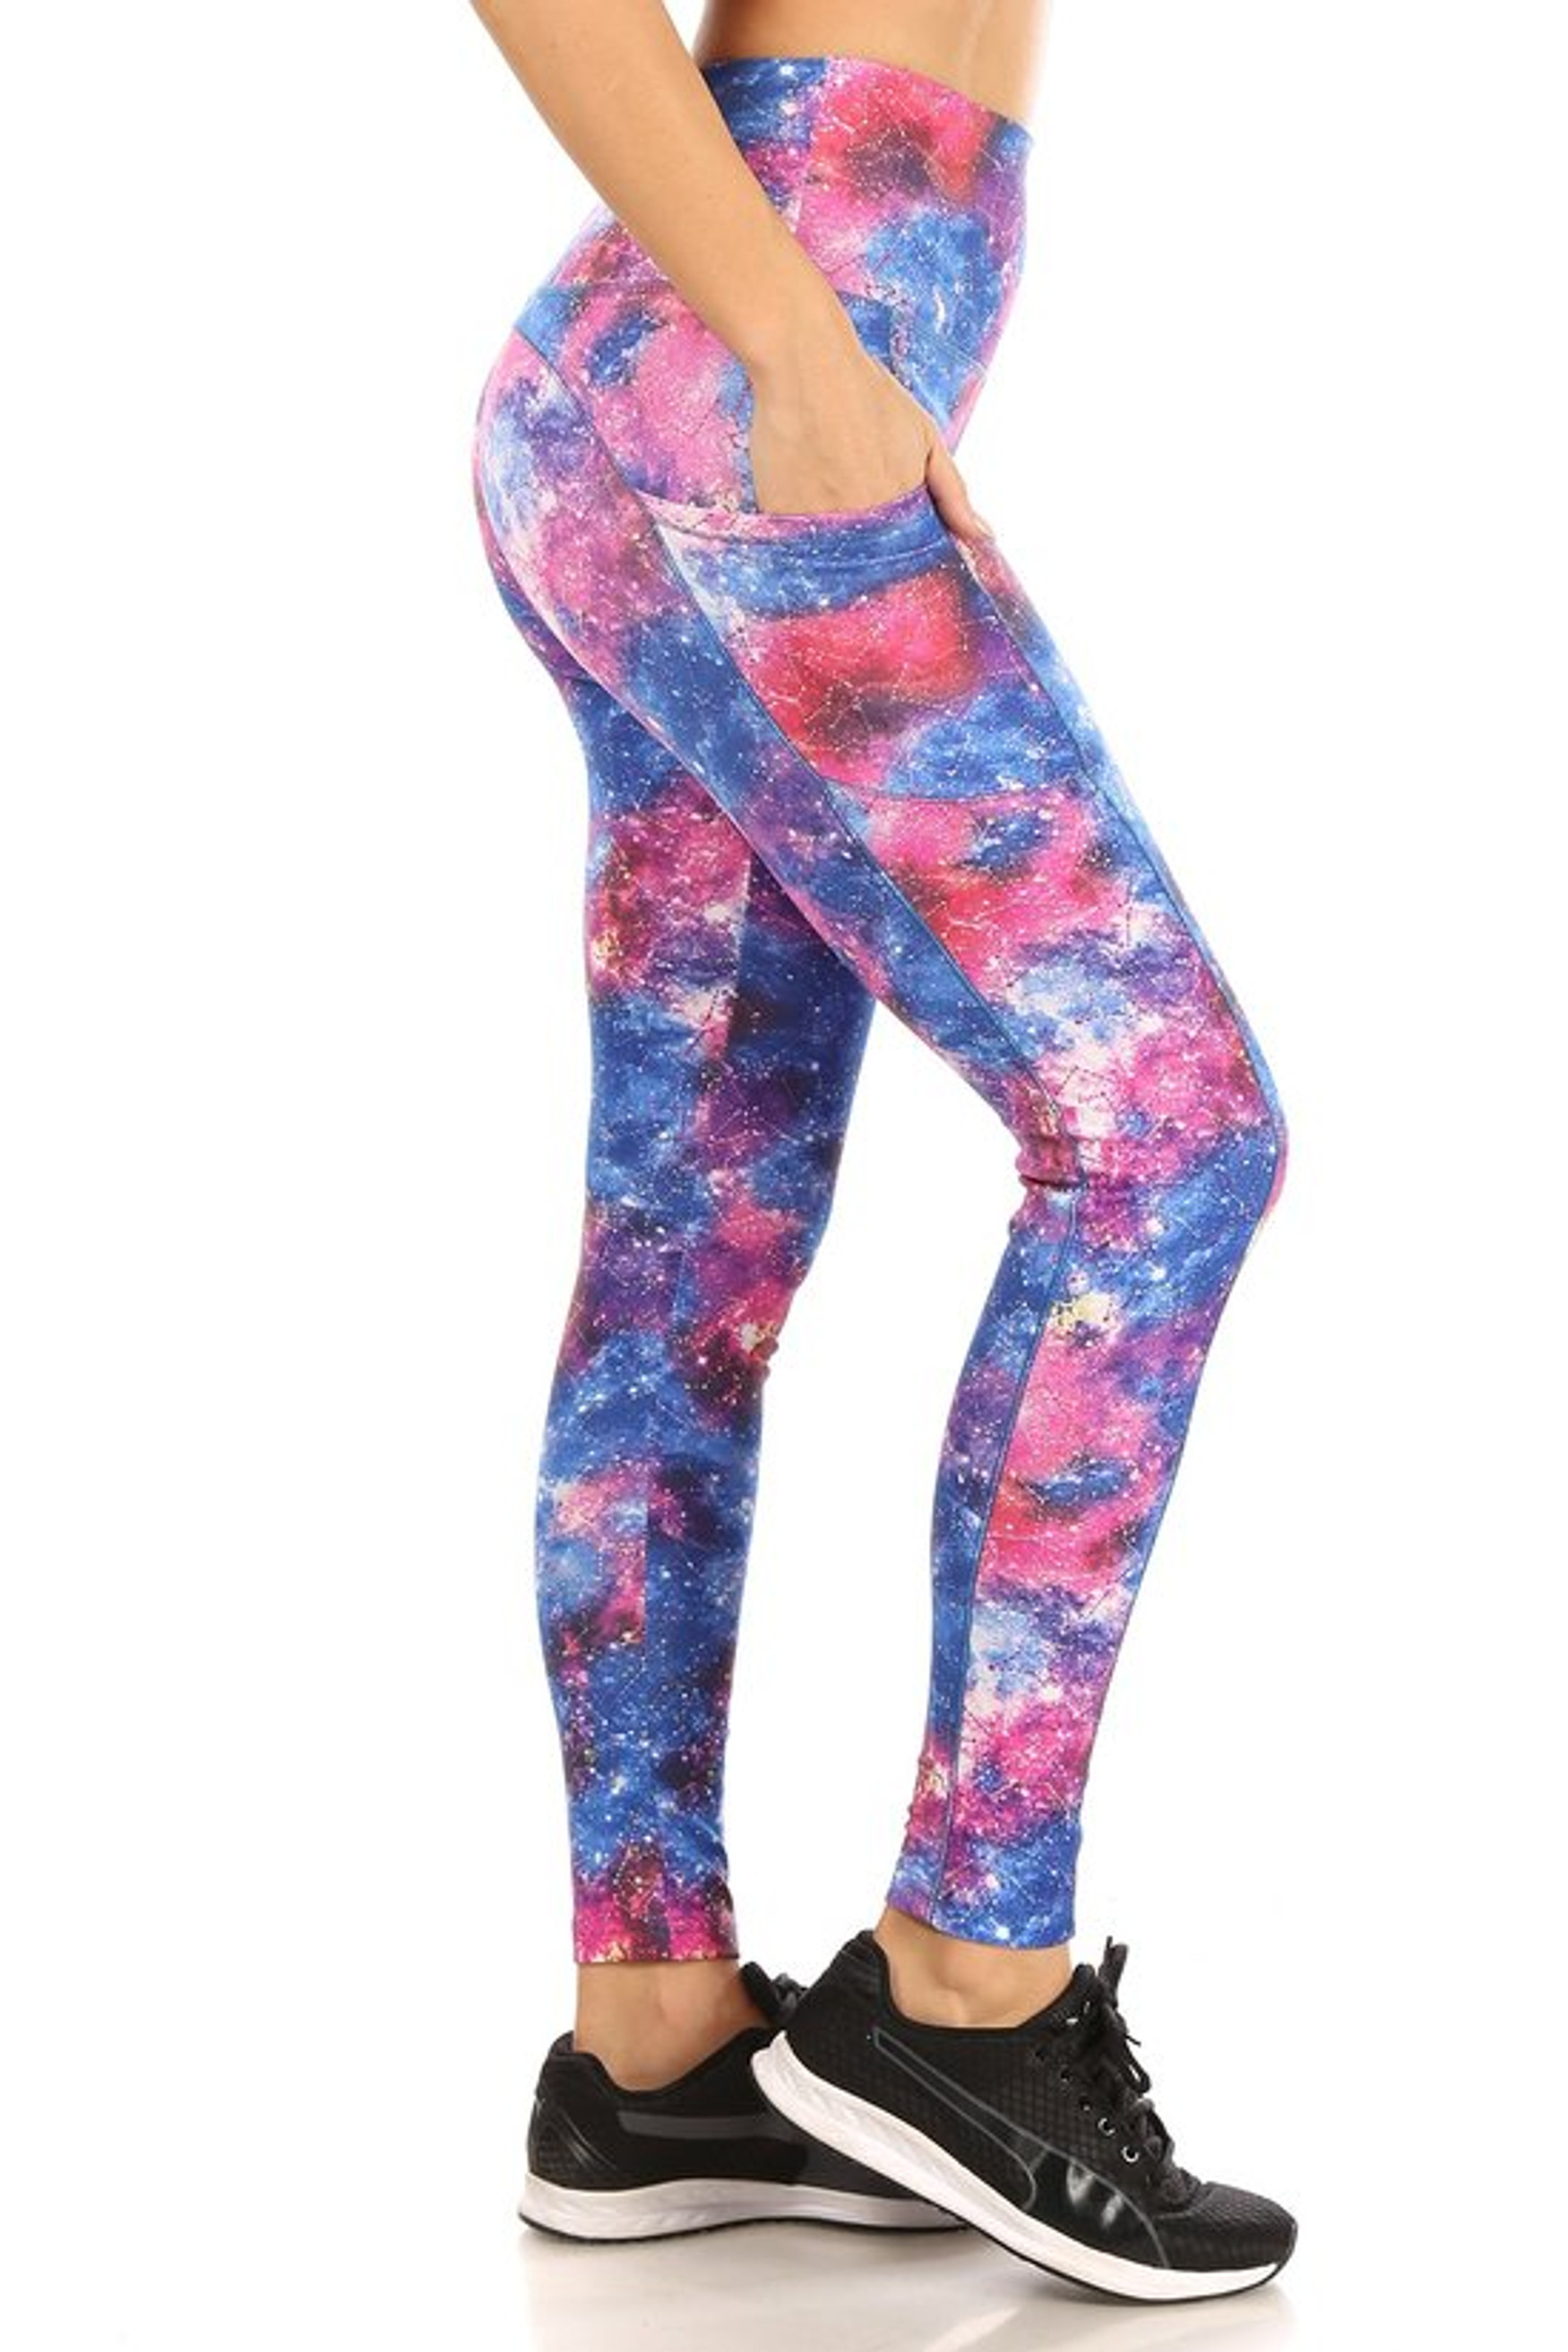 Tie Dye Galaxy High Waisted Workout Leggings with Side Pockets